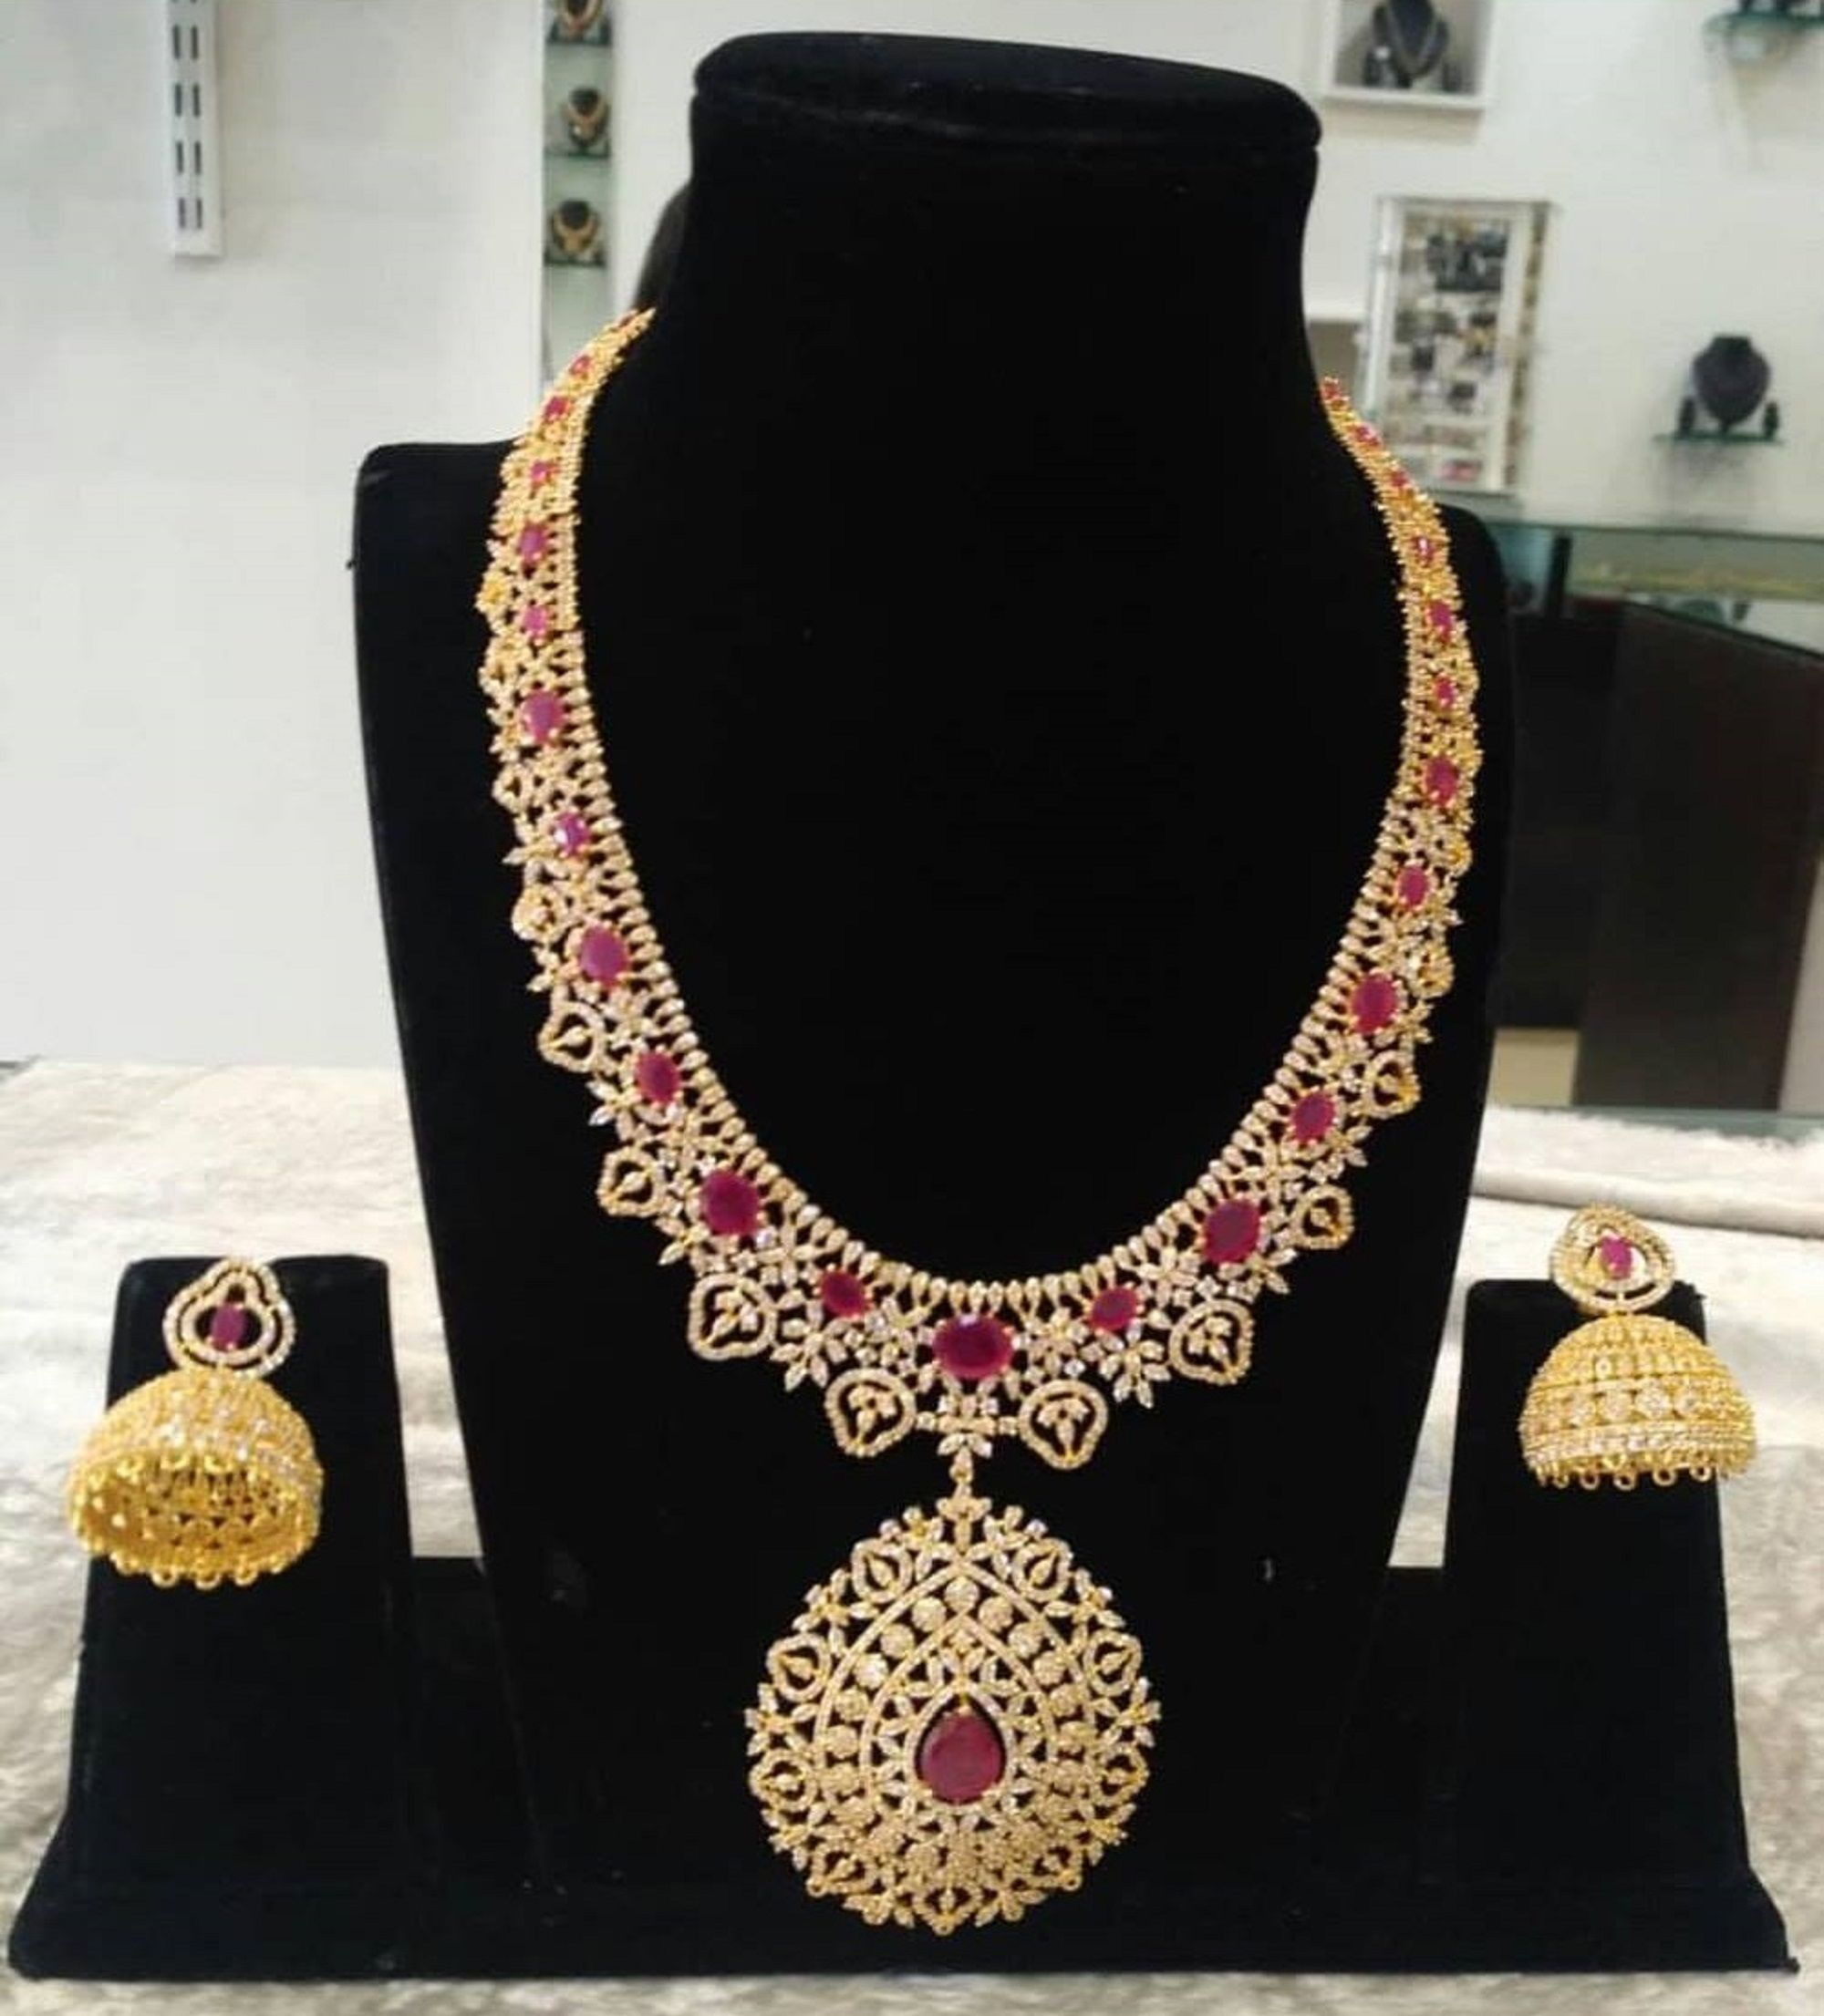 Necklace-Necklaces for Women-Jewellery Sets-Jewelry-Jewelry Set-Jewellery-Indian  Earrings-Jhumkas-Necklace and Earring-Indian Necklace Set | Women's jewelry  sets, Women jewelry, Indian earrings